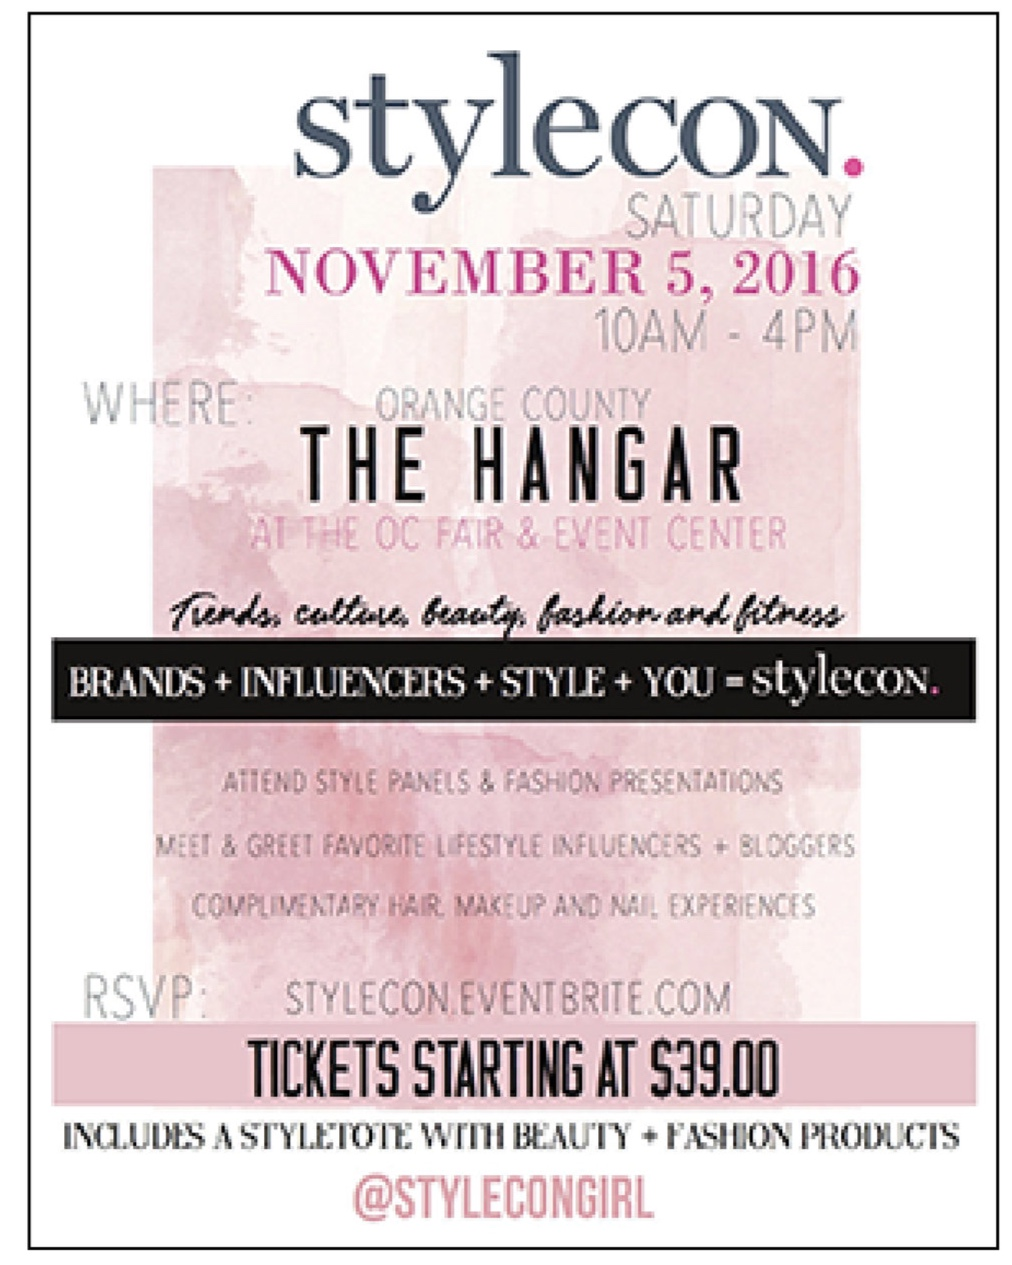 Orange Coast Magazine,  August 2016  StyleCon 2016 Set for Nov. 5! Get Your Tickets Now!